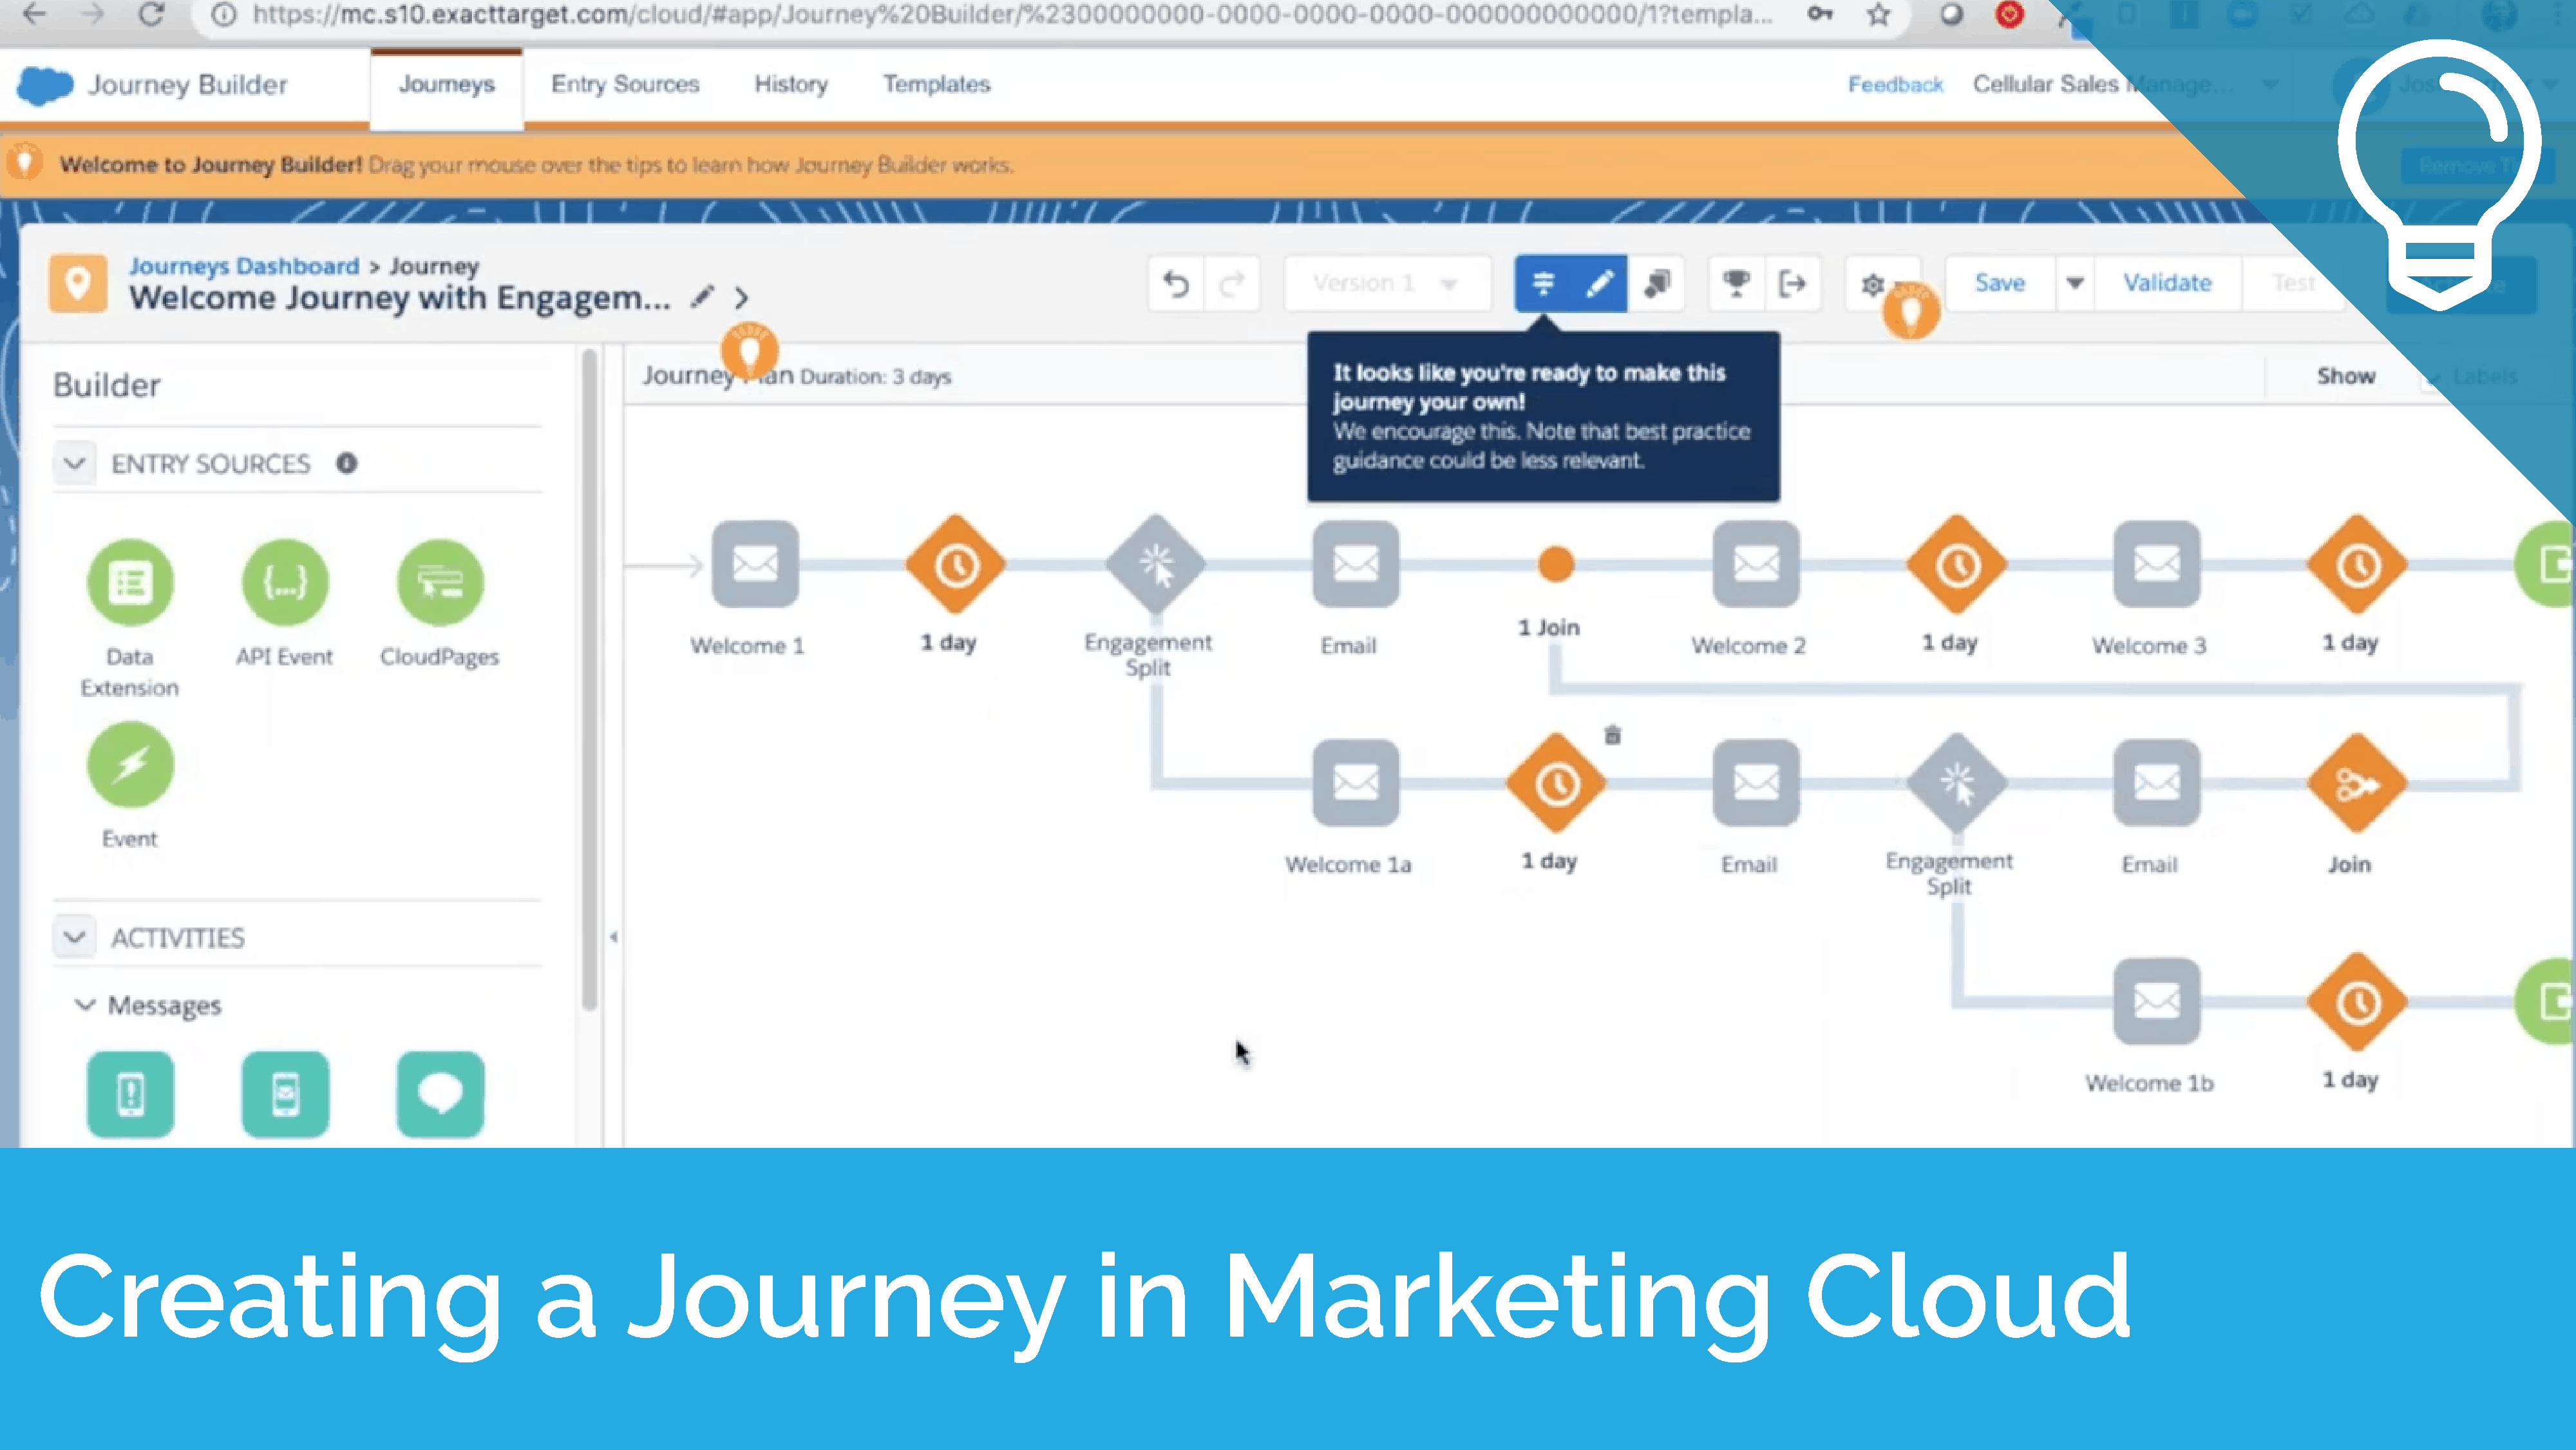 Creating a Journey in Marketing Cloud